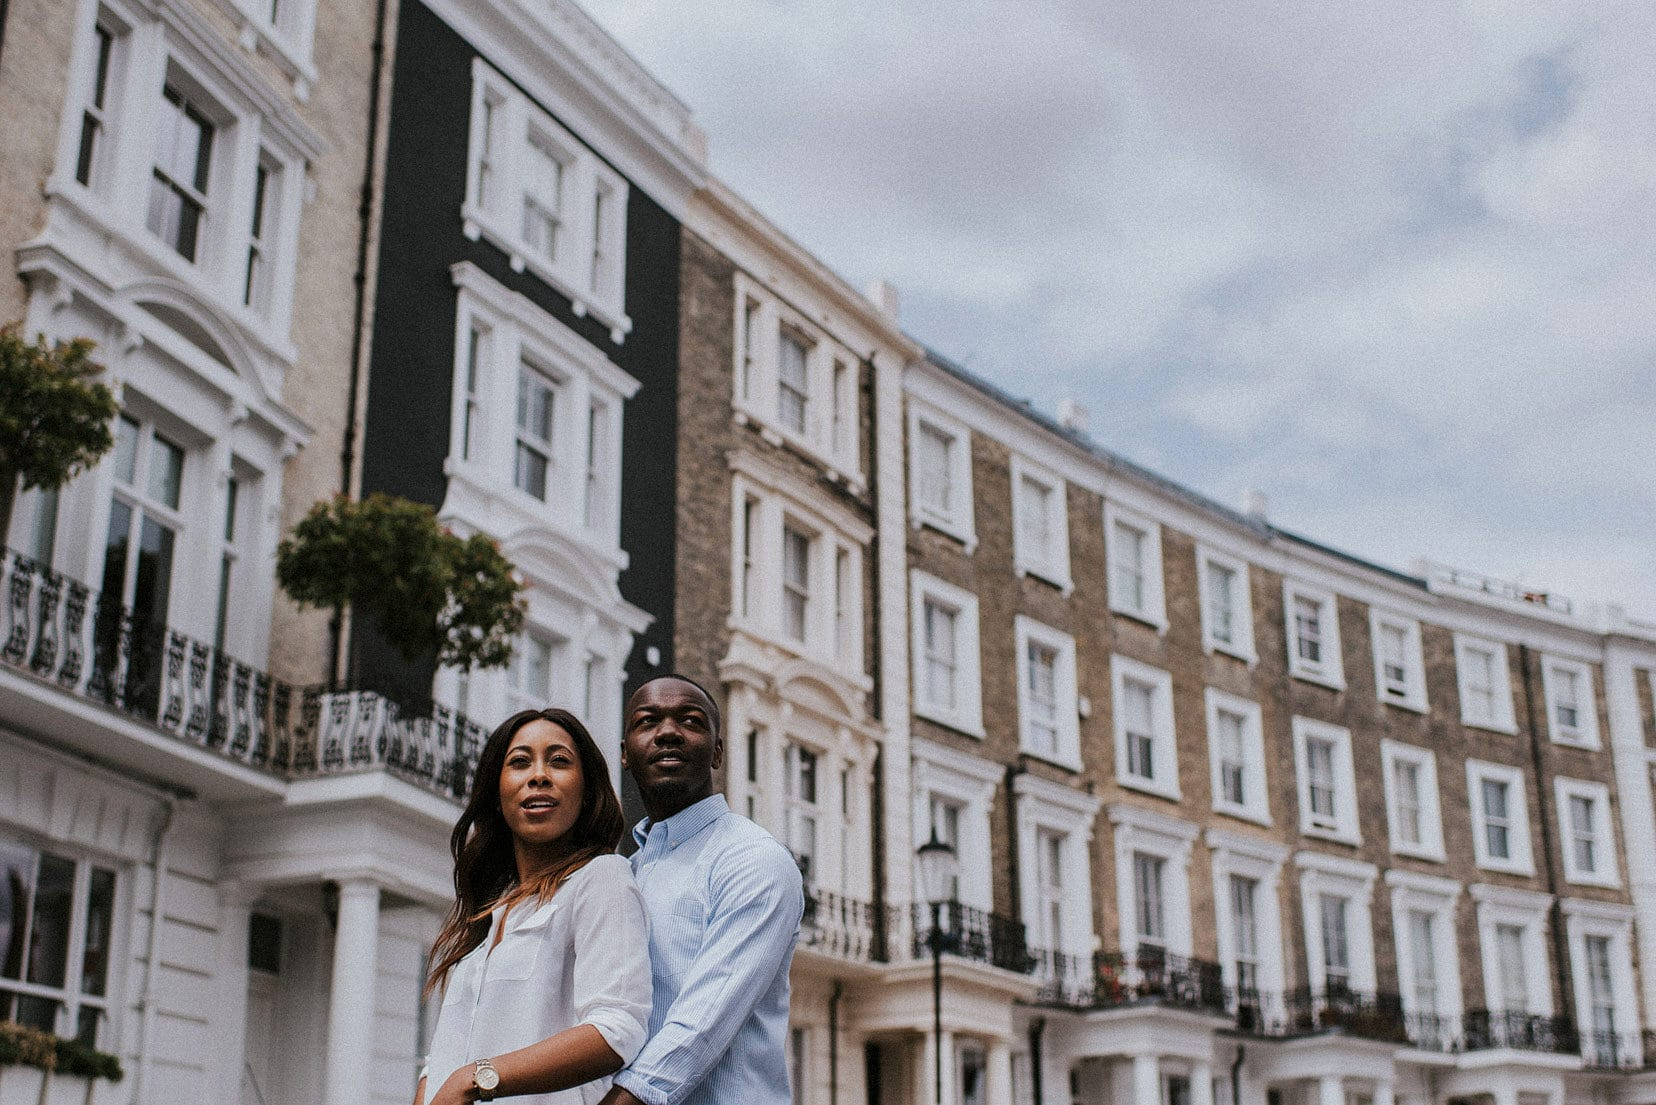 portobello-market-london-engagement-session (7)